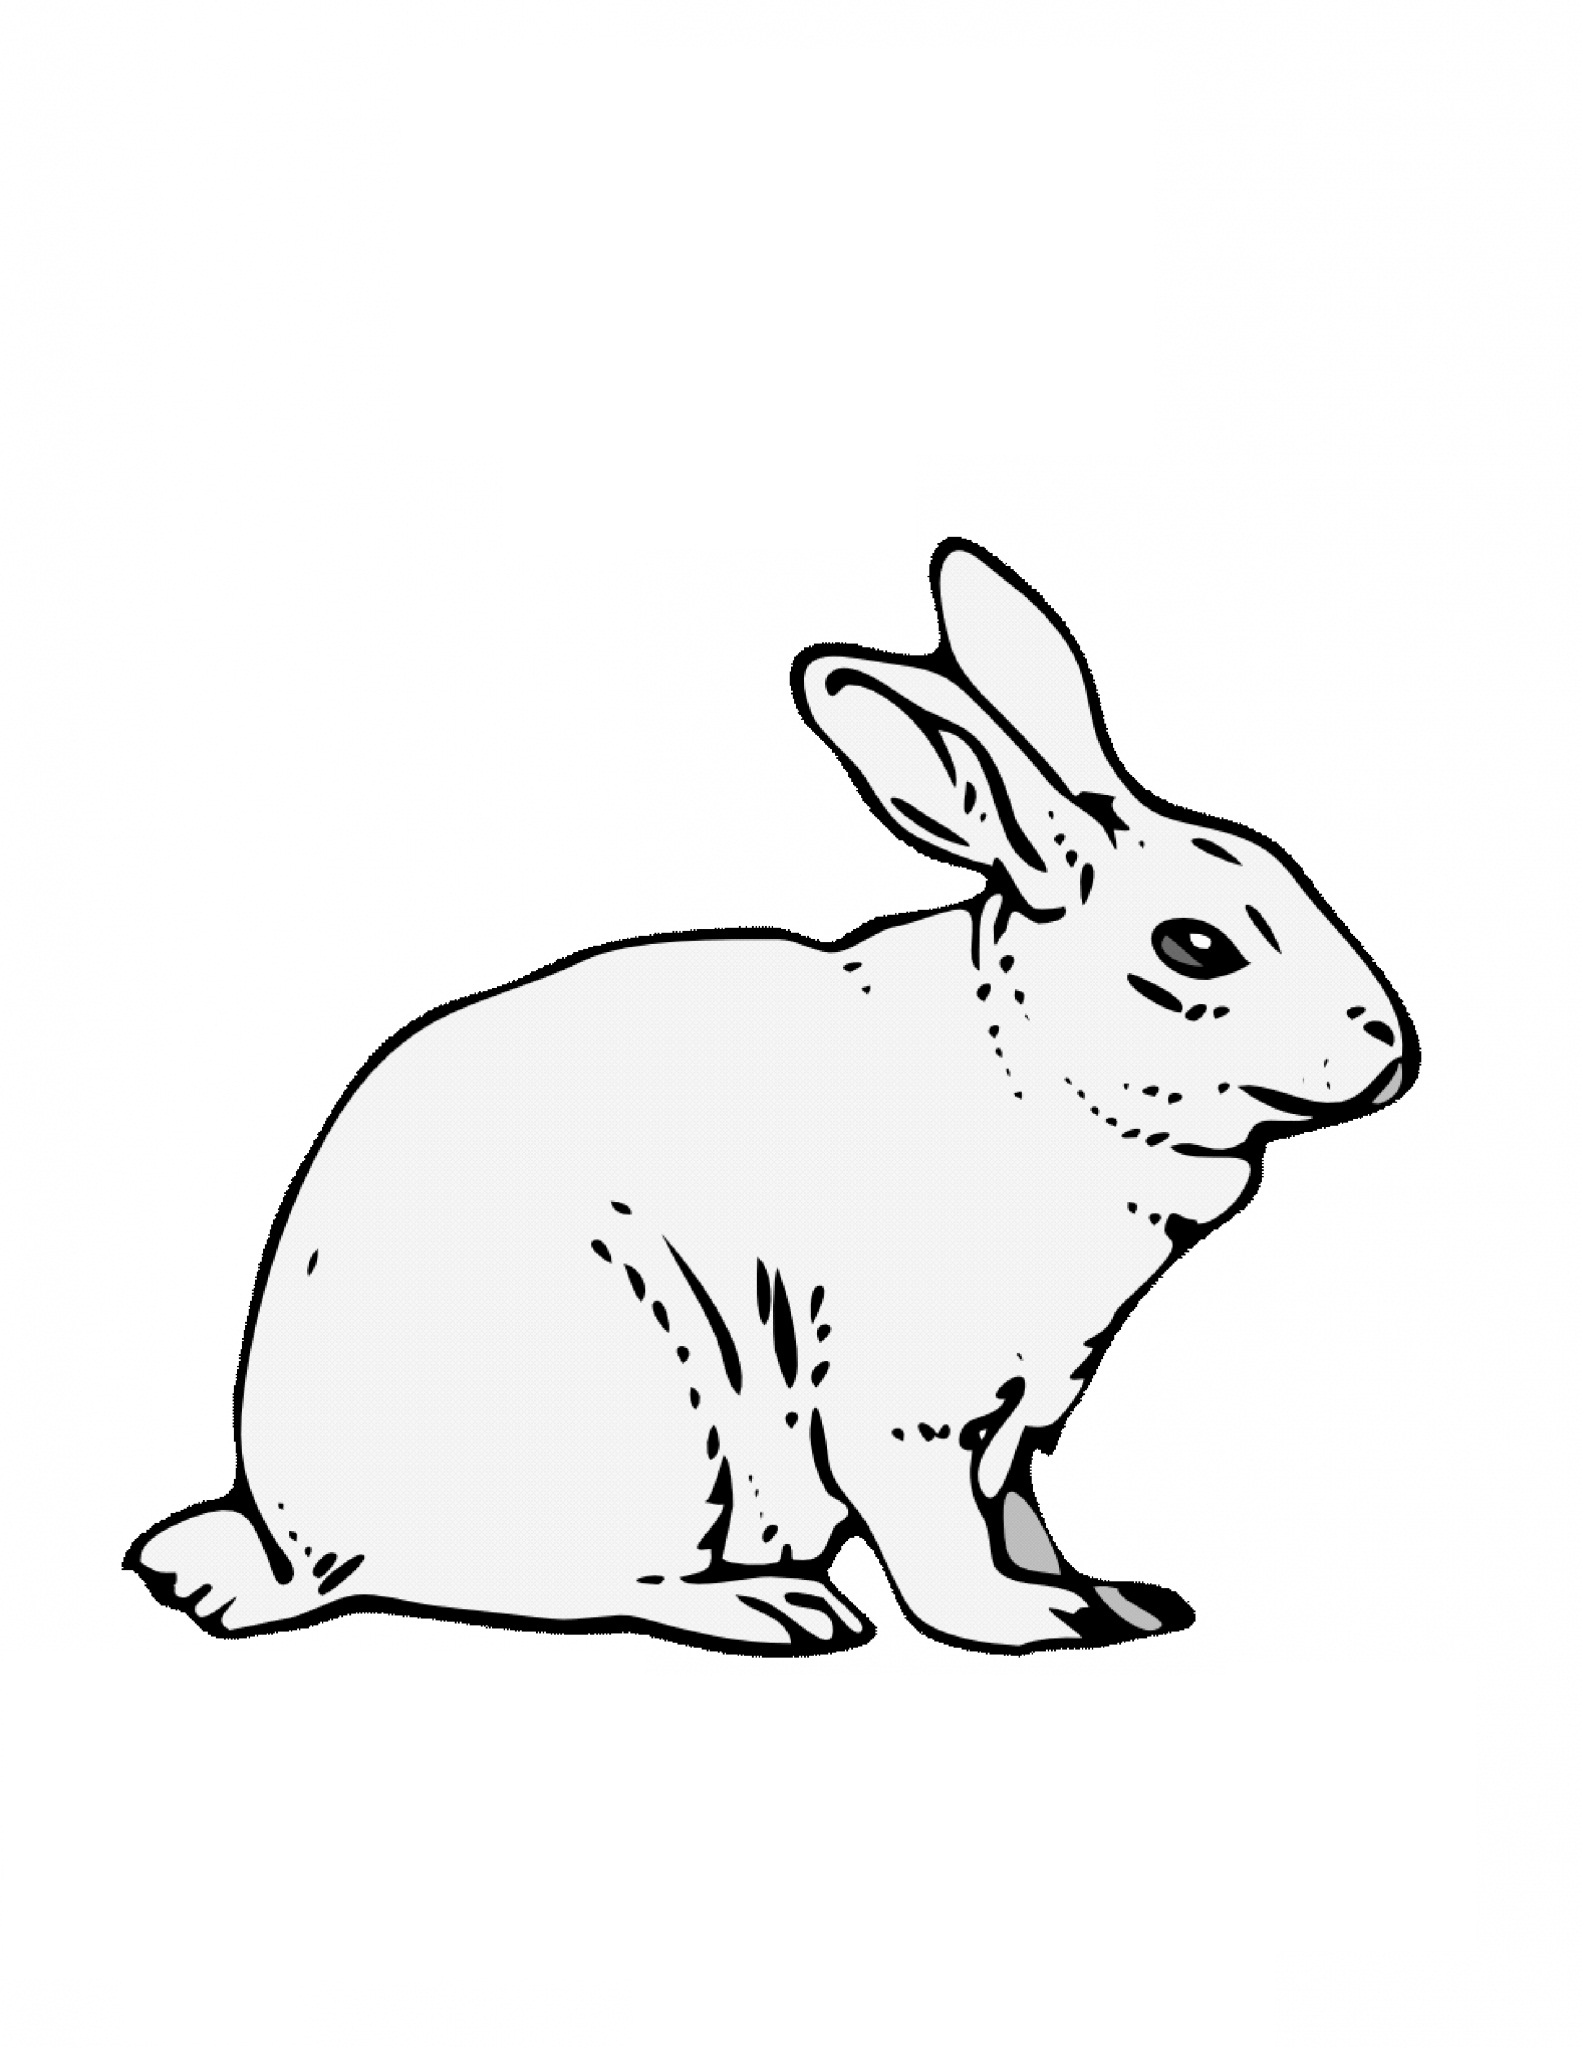 rabbit coloring page rabbit free to color for children rabbit kids coloring pages page coloring rabbit